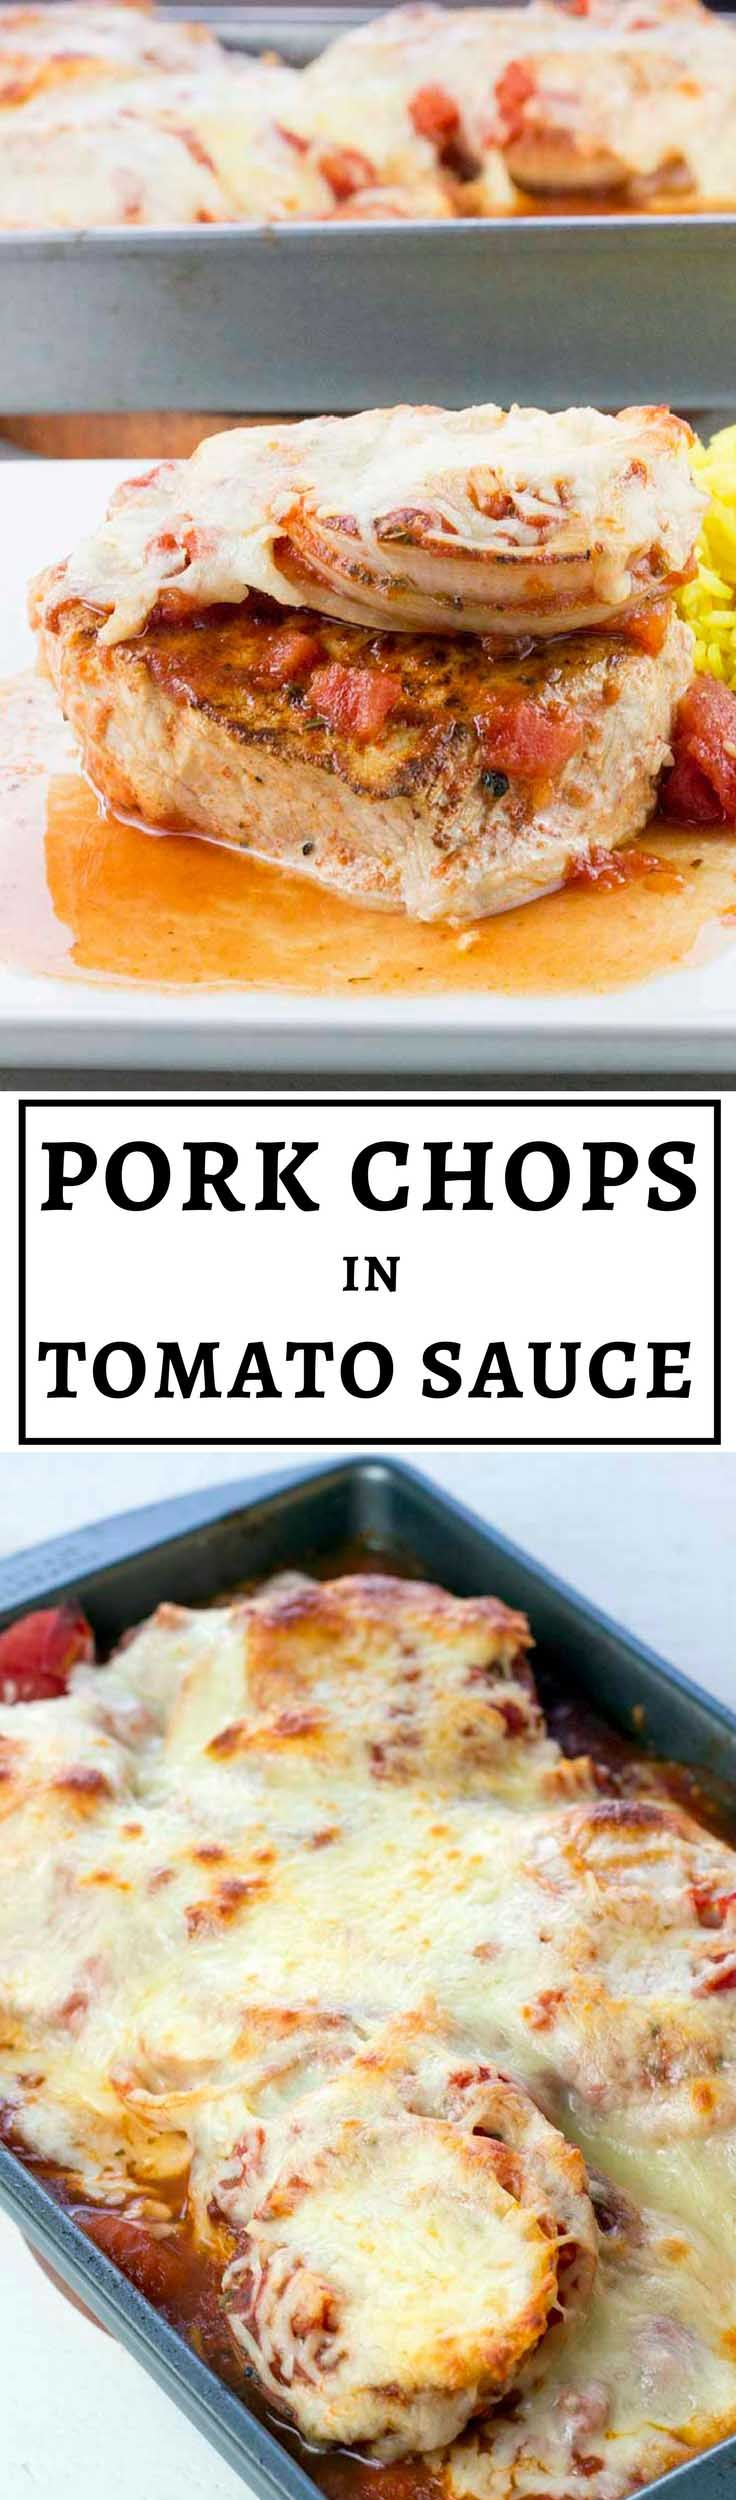 Baked Boneless Pork Chops in Tomato Sauce These pork chops are tender, juicy, and bursting with flavor! Baked Boneless Pork Chops in Tomato Sauce is a high-protein recipe you'll find yourself making over and over again. It's also gluten-free and low carb.